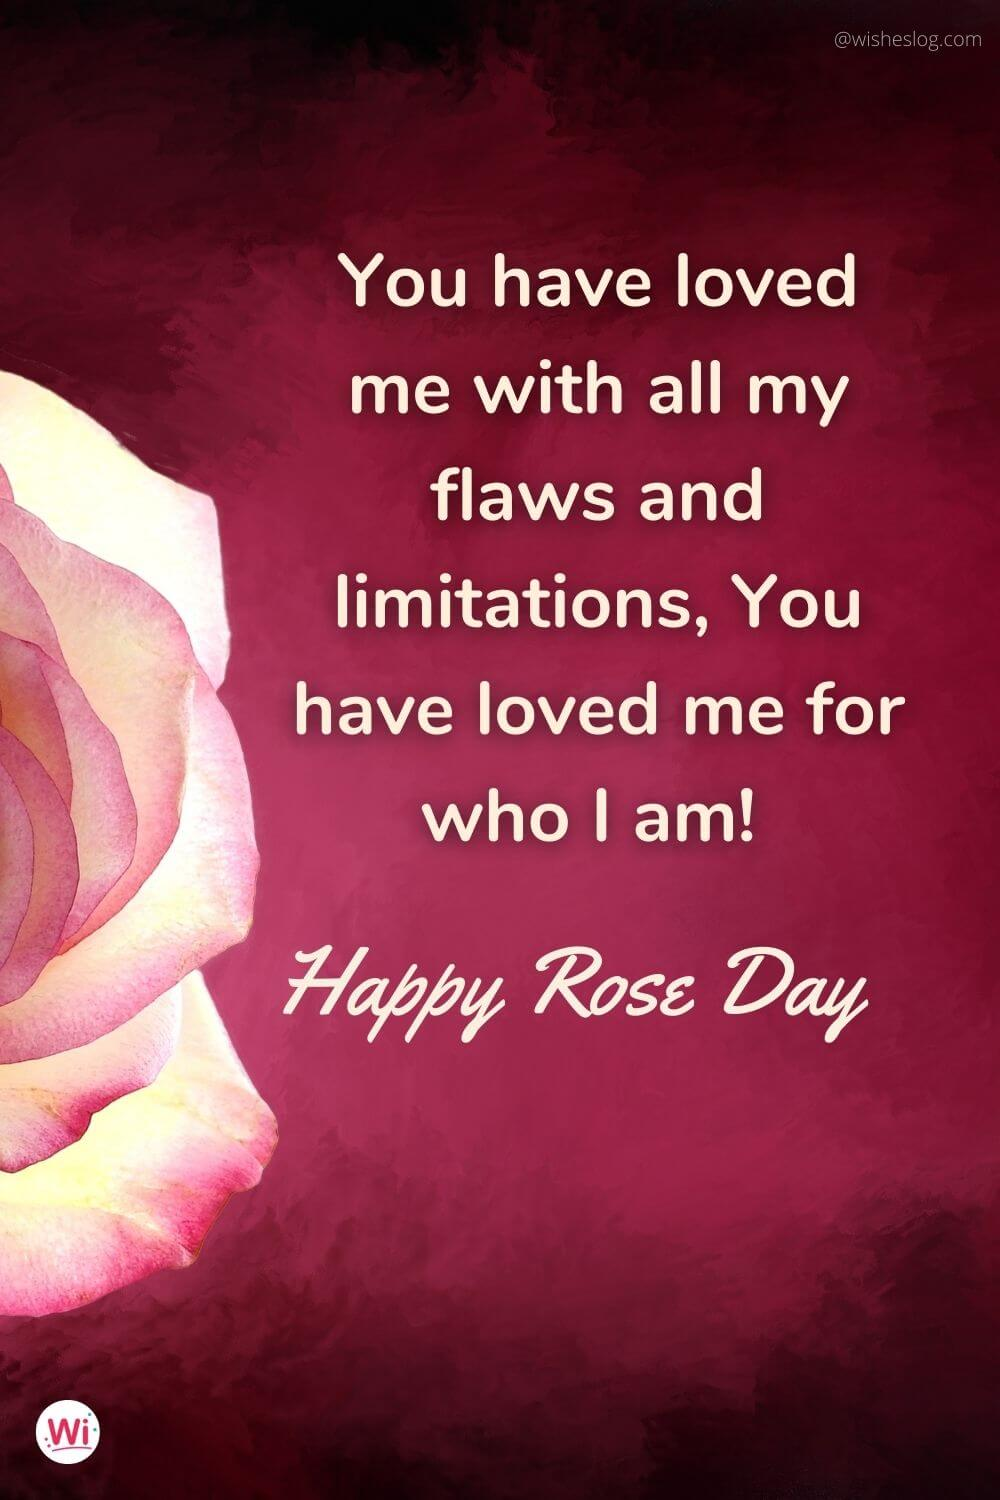 wishes for rose day for boyfriend